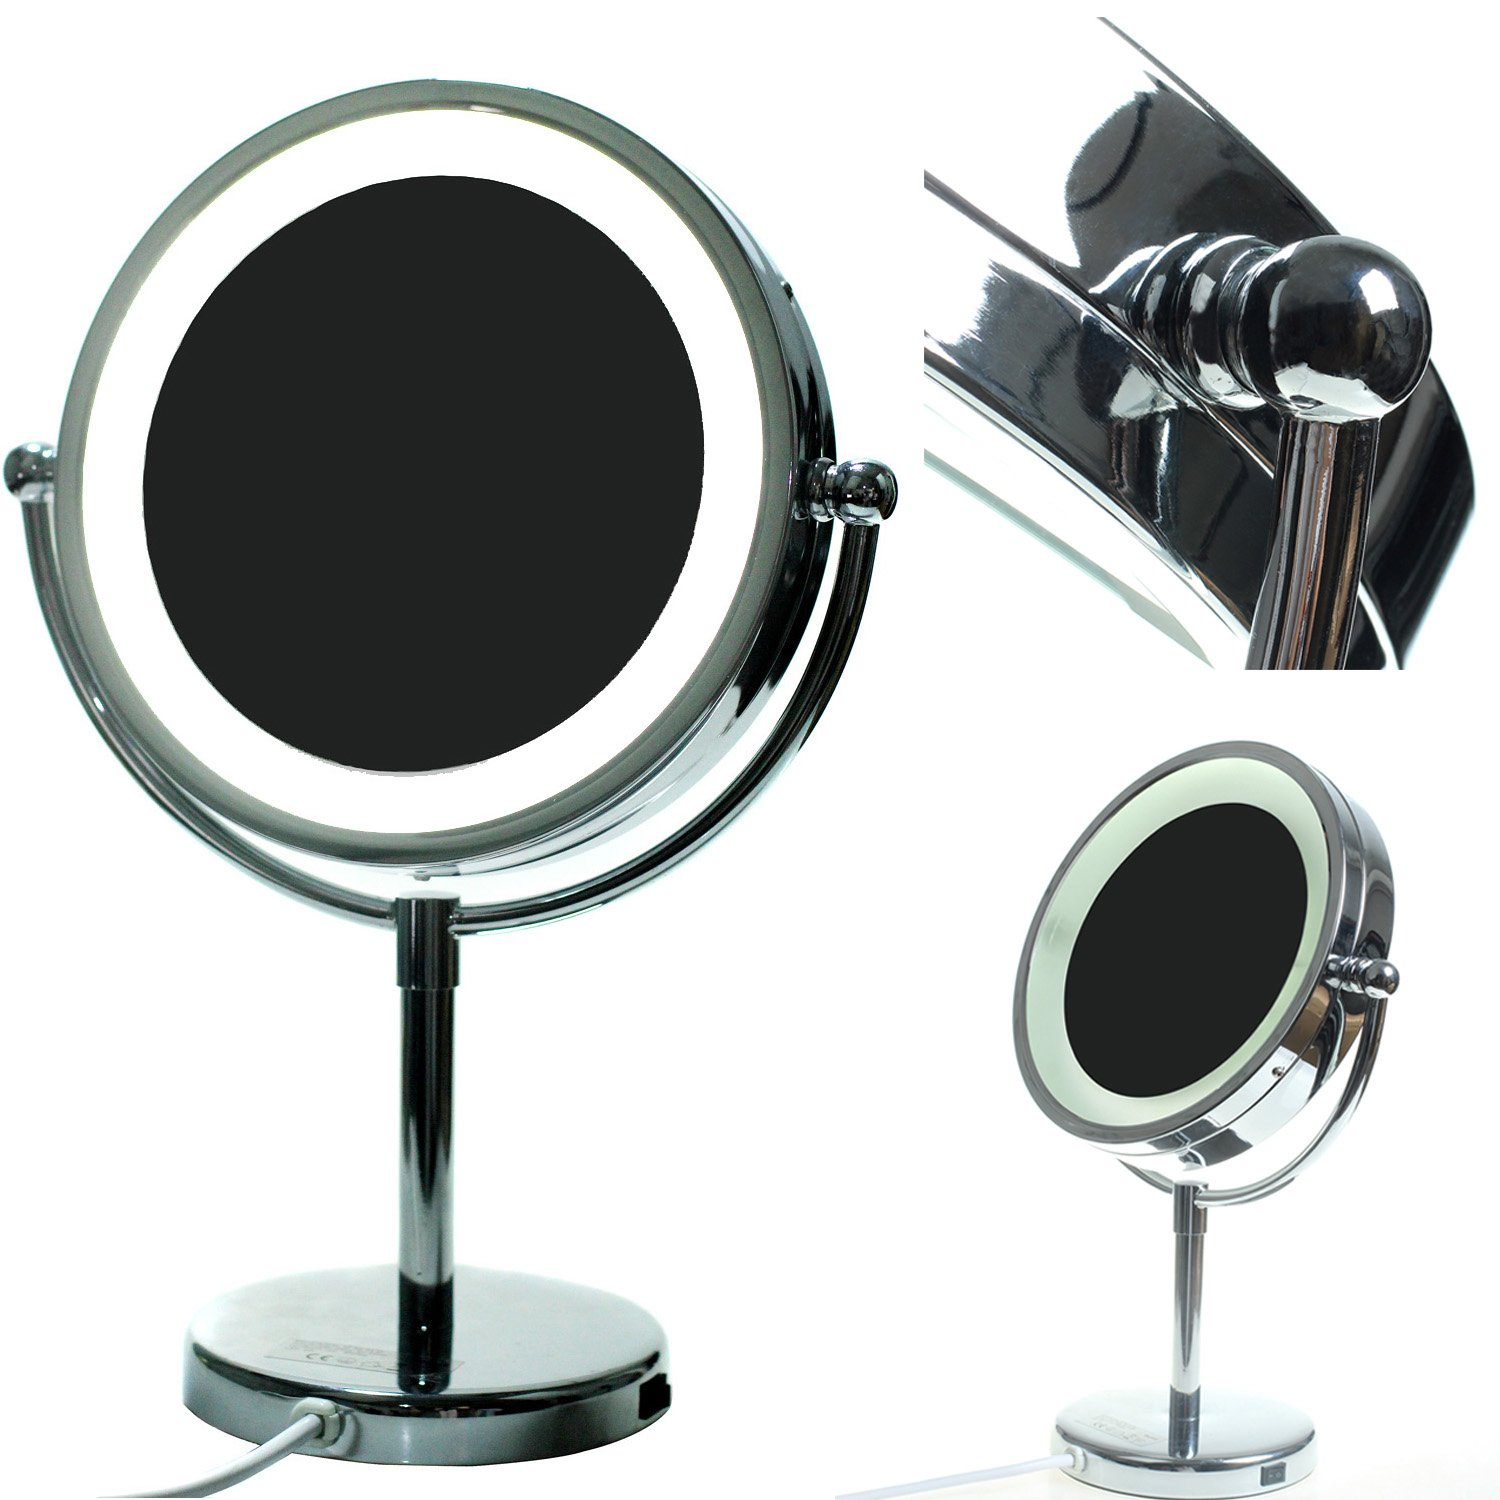 HIMRY® LED Make-up Mirror 8.5 inch 7X Magnification, Stand LED Lighted Mirror with UK Plug, Pedestal Cosmetic Mirror Shaving Mirror, Swivel Bathroom Table Lighting Mirror Chrome finish, KXD3122-7x KXSHOP